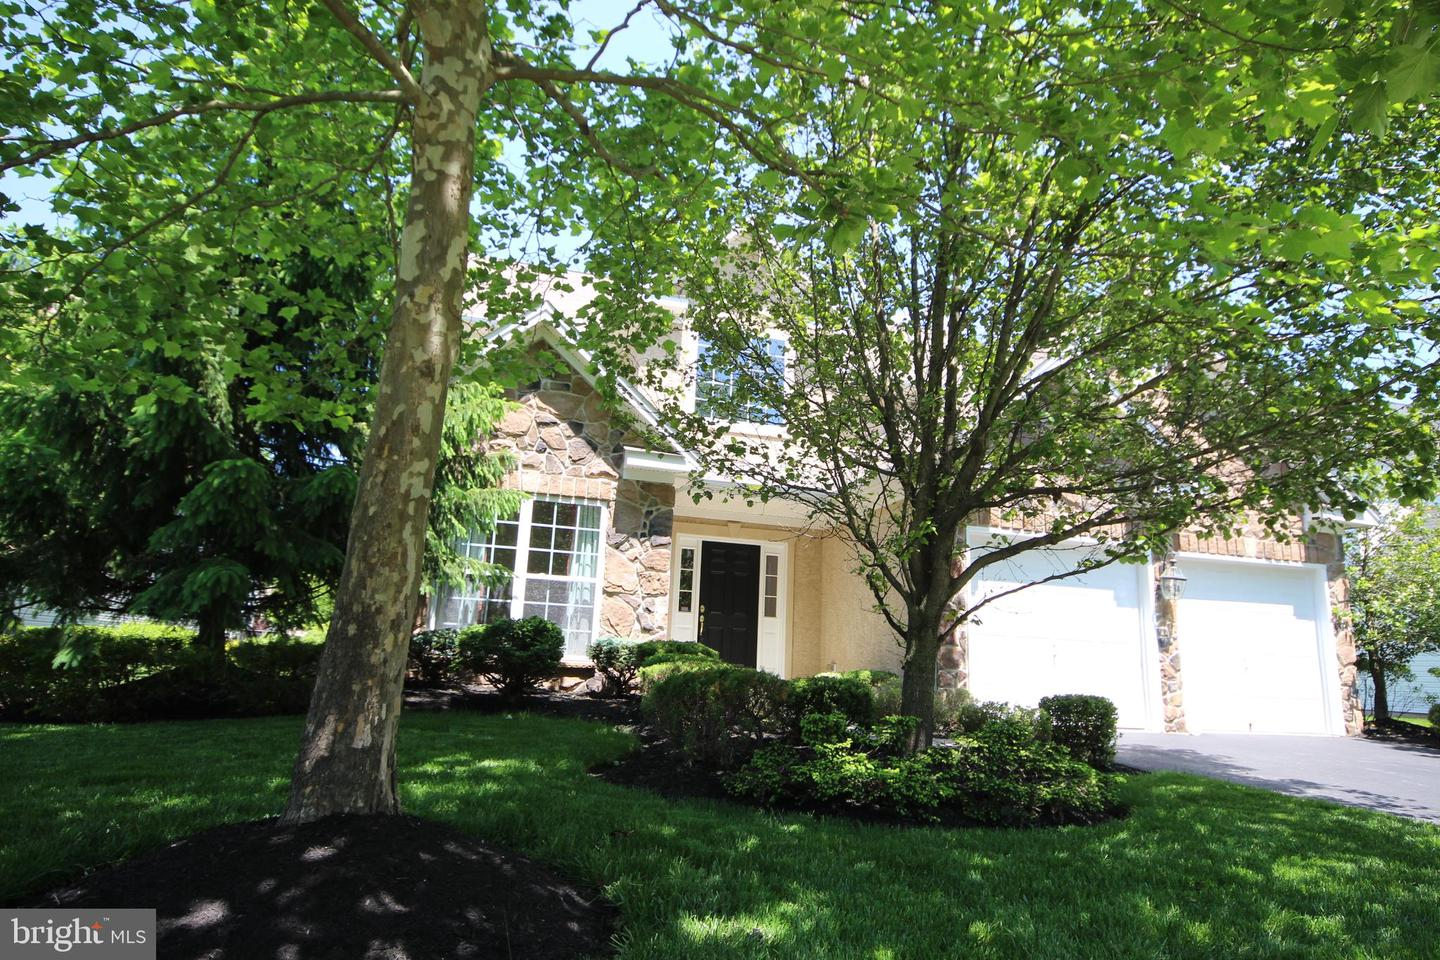 72 LEXINGTON DR, PENNINGTON, NJ 08534